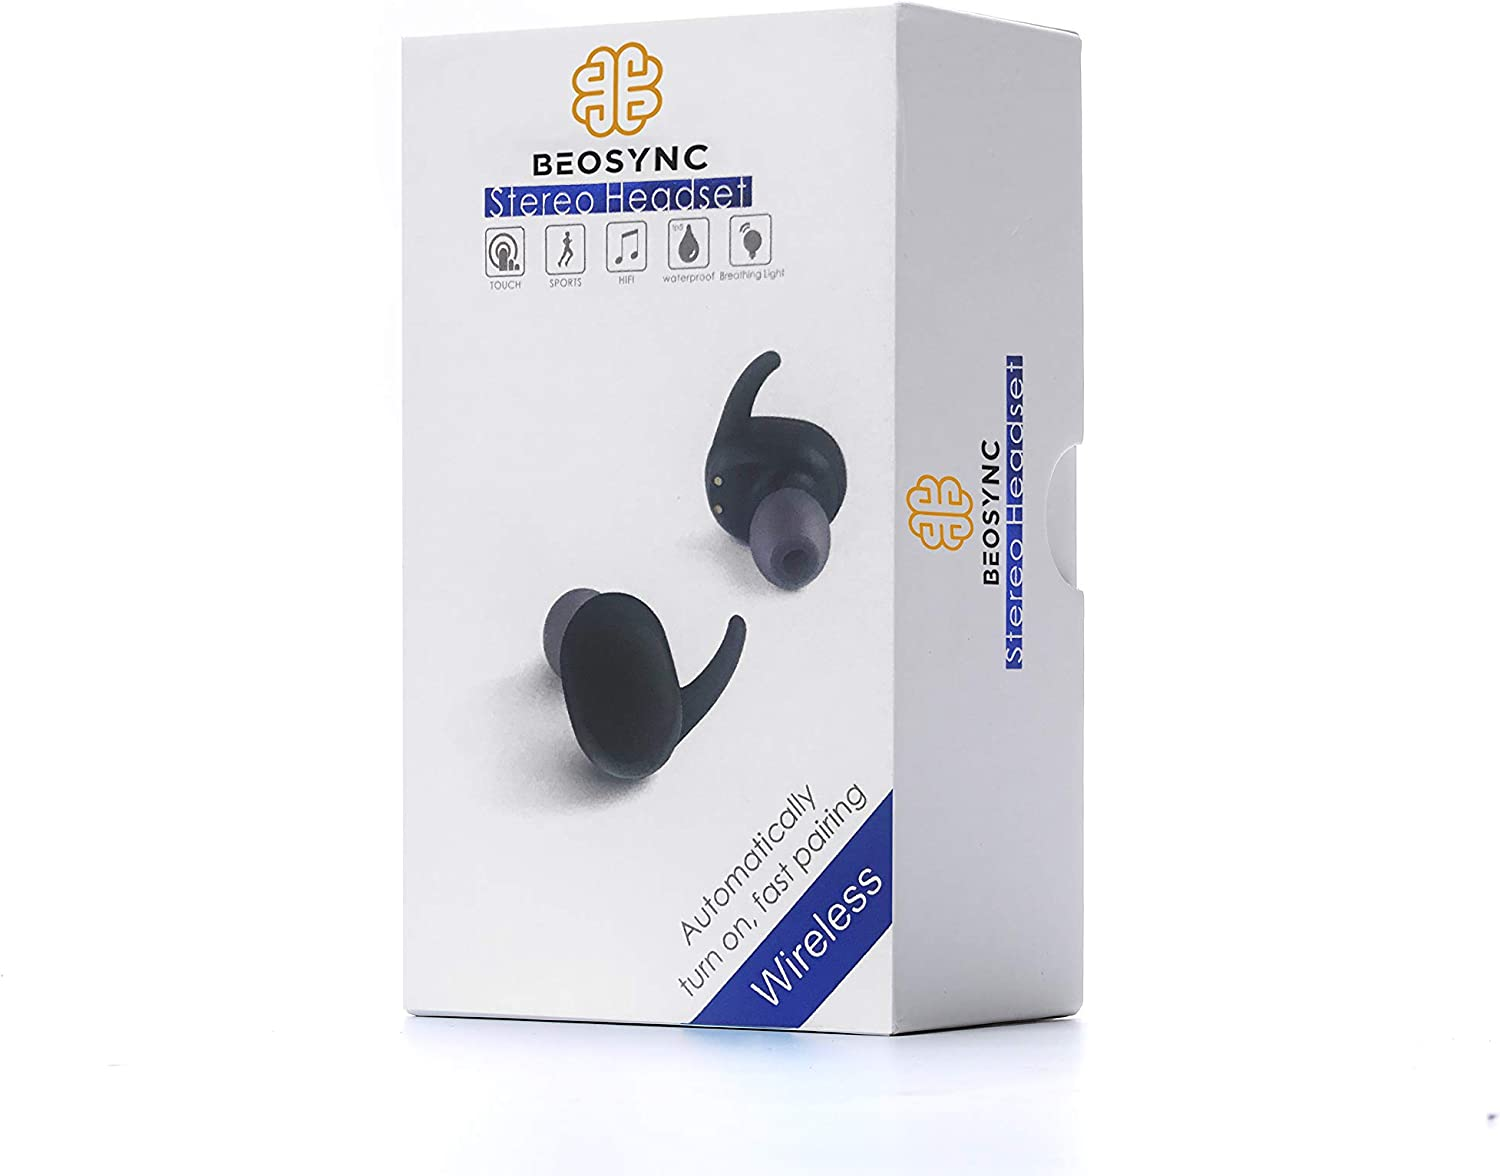 Amazon Com Wireless Earbuds By Beosync Wireless Headphones With Charging Case Waterproof With Full Touch Capabilities Hifi Speakers With Noise Cancelling Technology Bluetooth Headphones Great For Sports Home Audio Theater